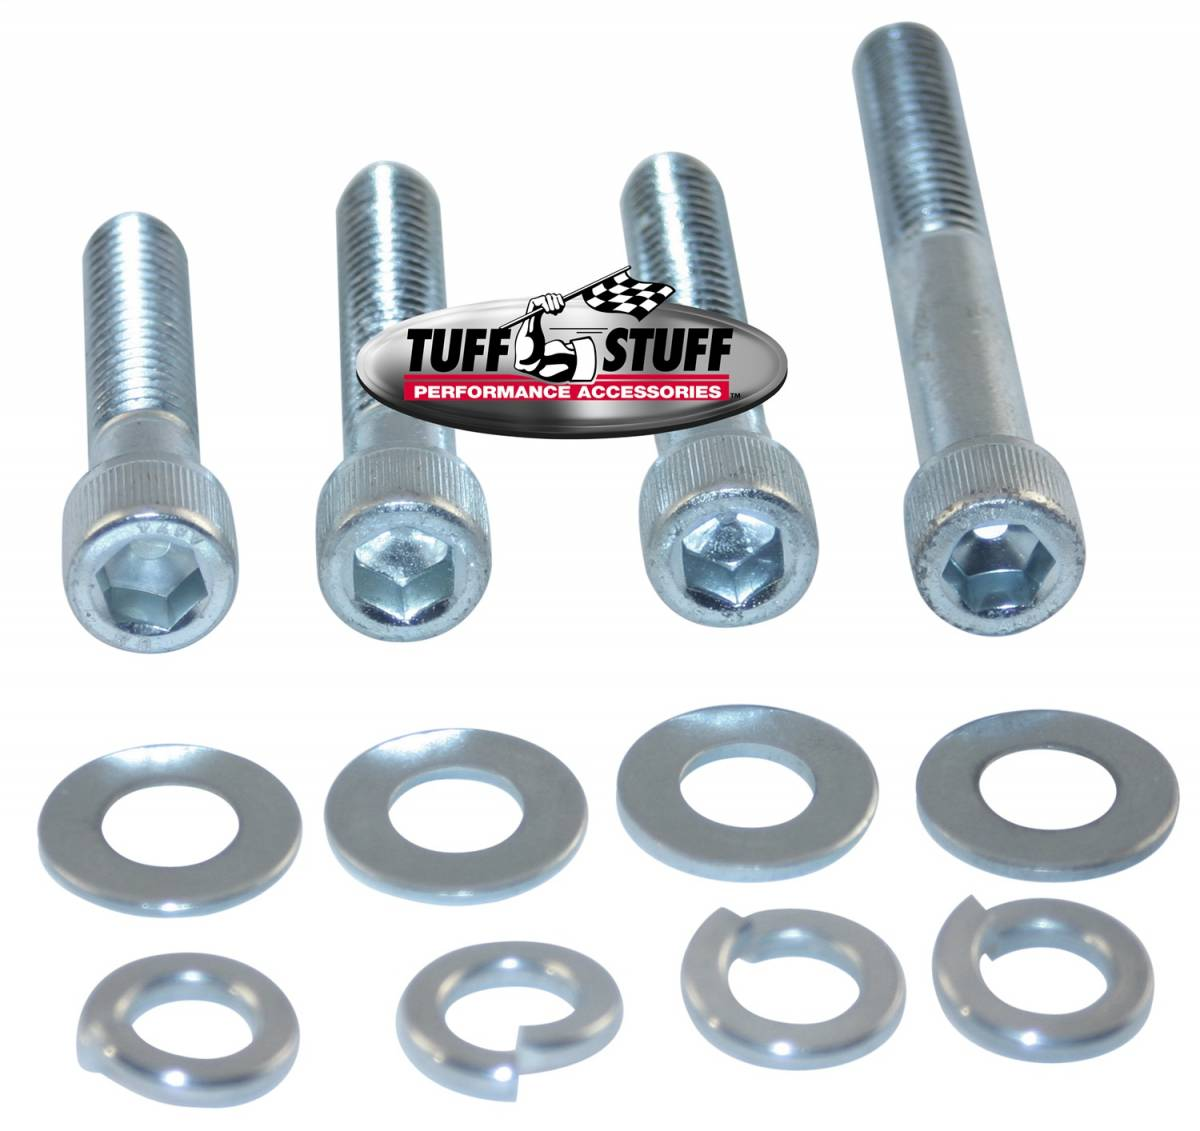 Tuff Stuff Performance - Water Pump Bolt Kit Chrome Socket Incl. (1)3/8in. -16x1 3/4/(2)3/8in.-16x2 in./(1)3/8 in-16x2 3/4in. Bolts/(4) Lock And (4) Flat Washers 7675C